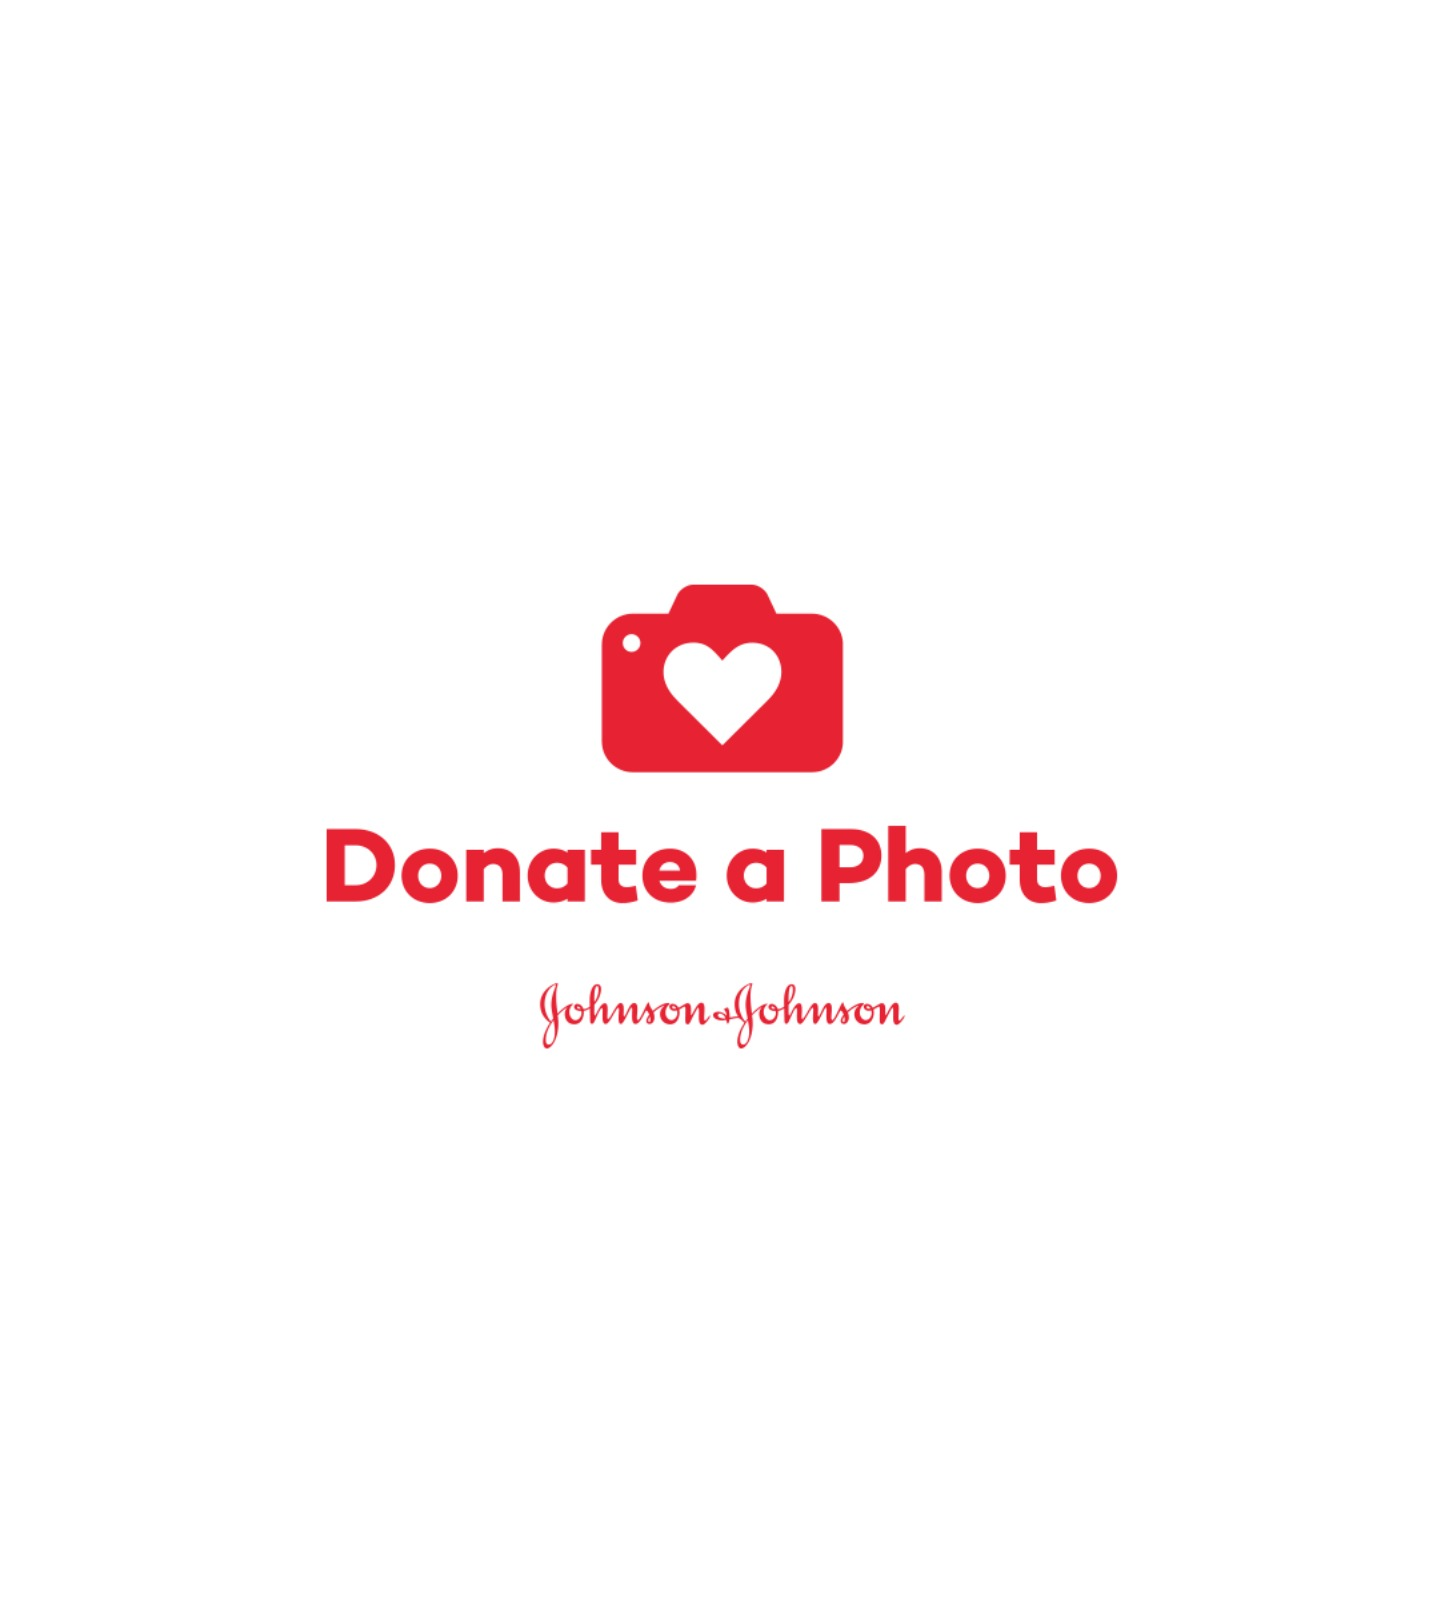 johnsons-save-the-children-support-early-childhood-development